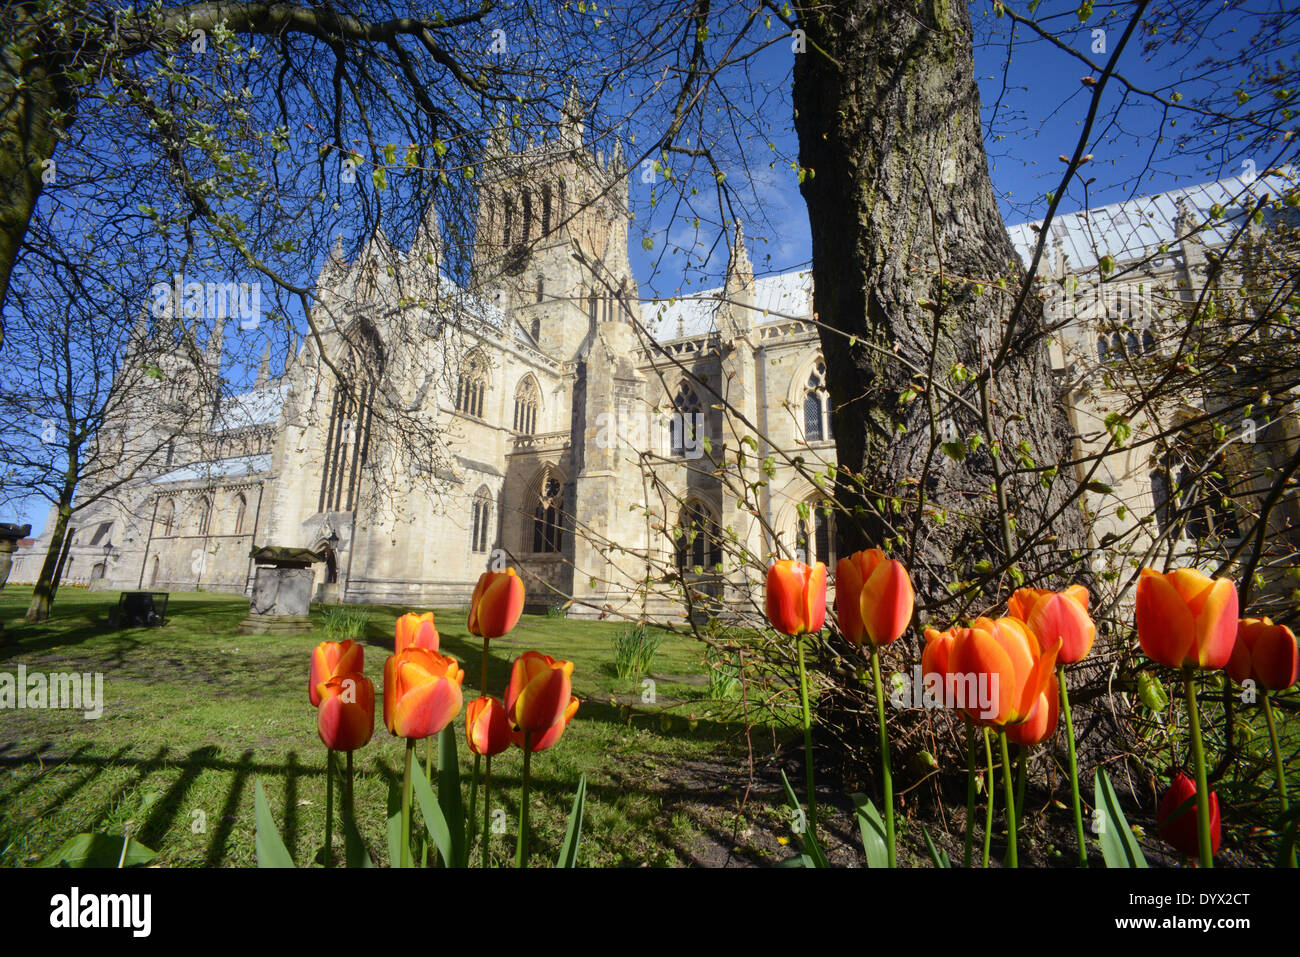 selby abbey at springtime founded in 1069 by benedict of Auxerre north yorkshire united kingdom - Stock Image